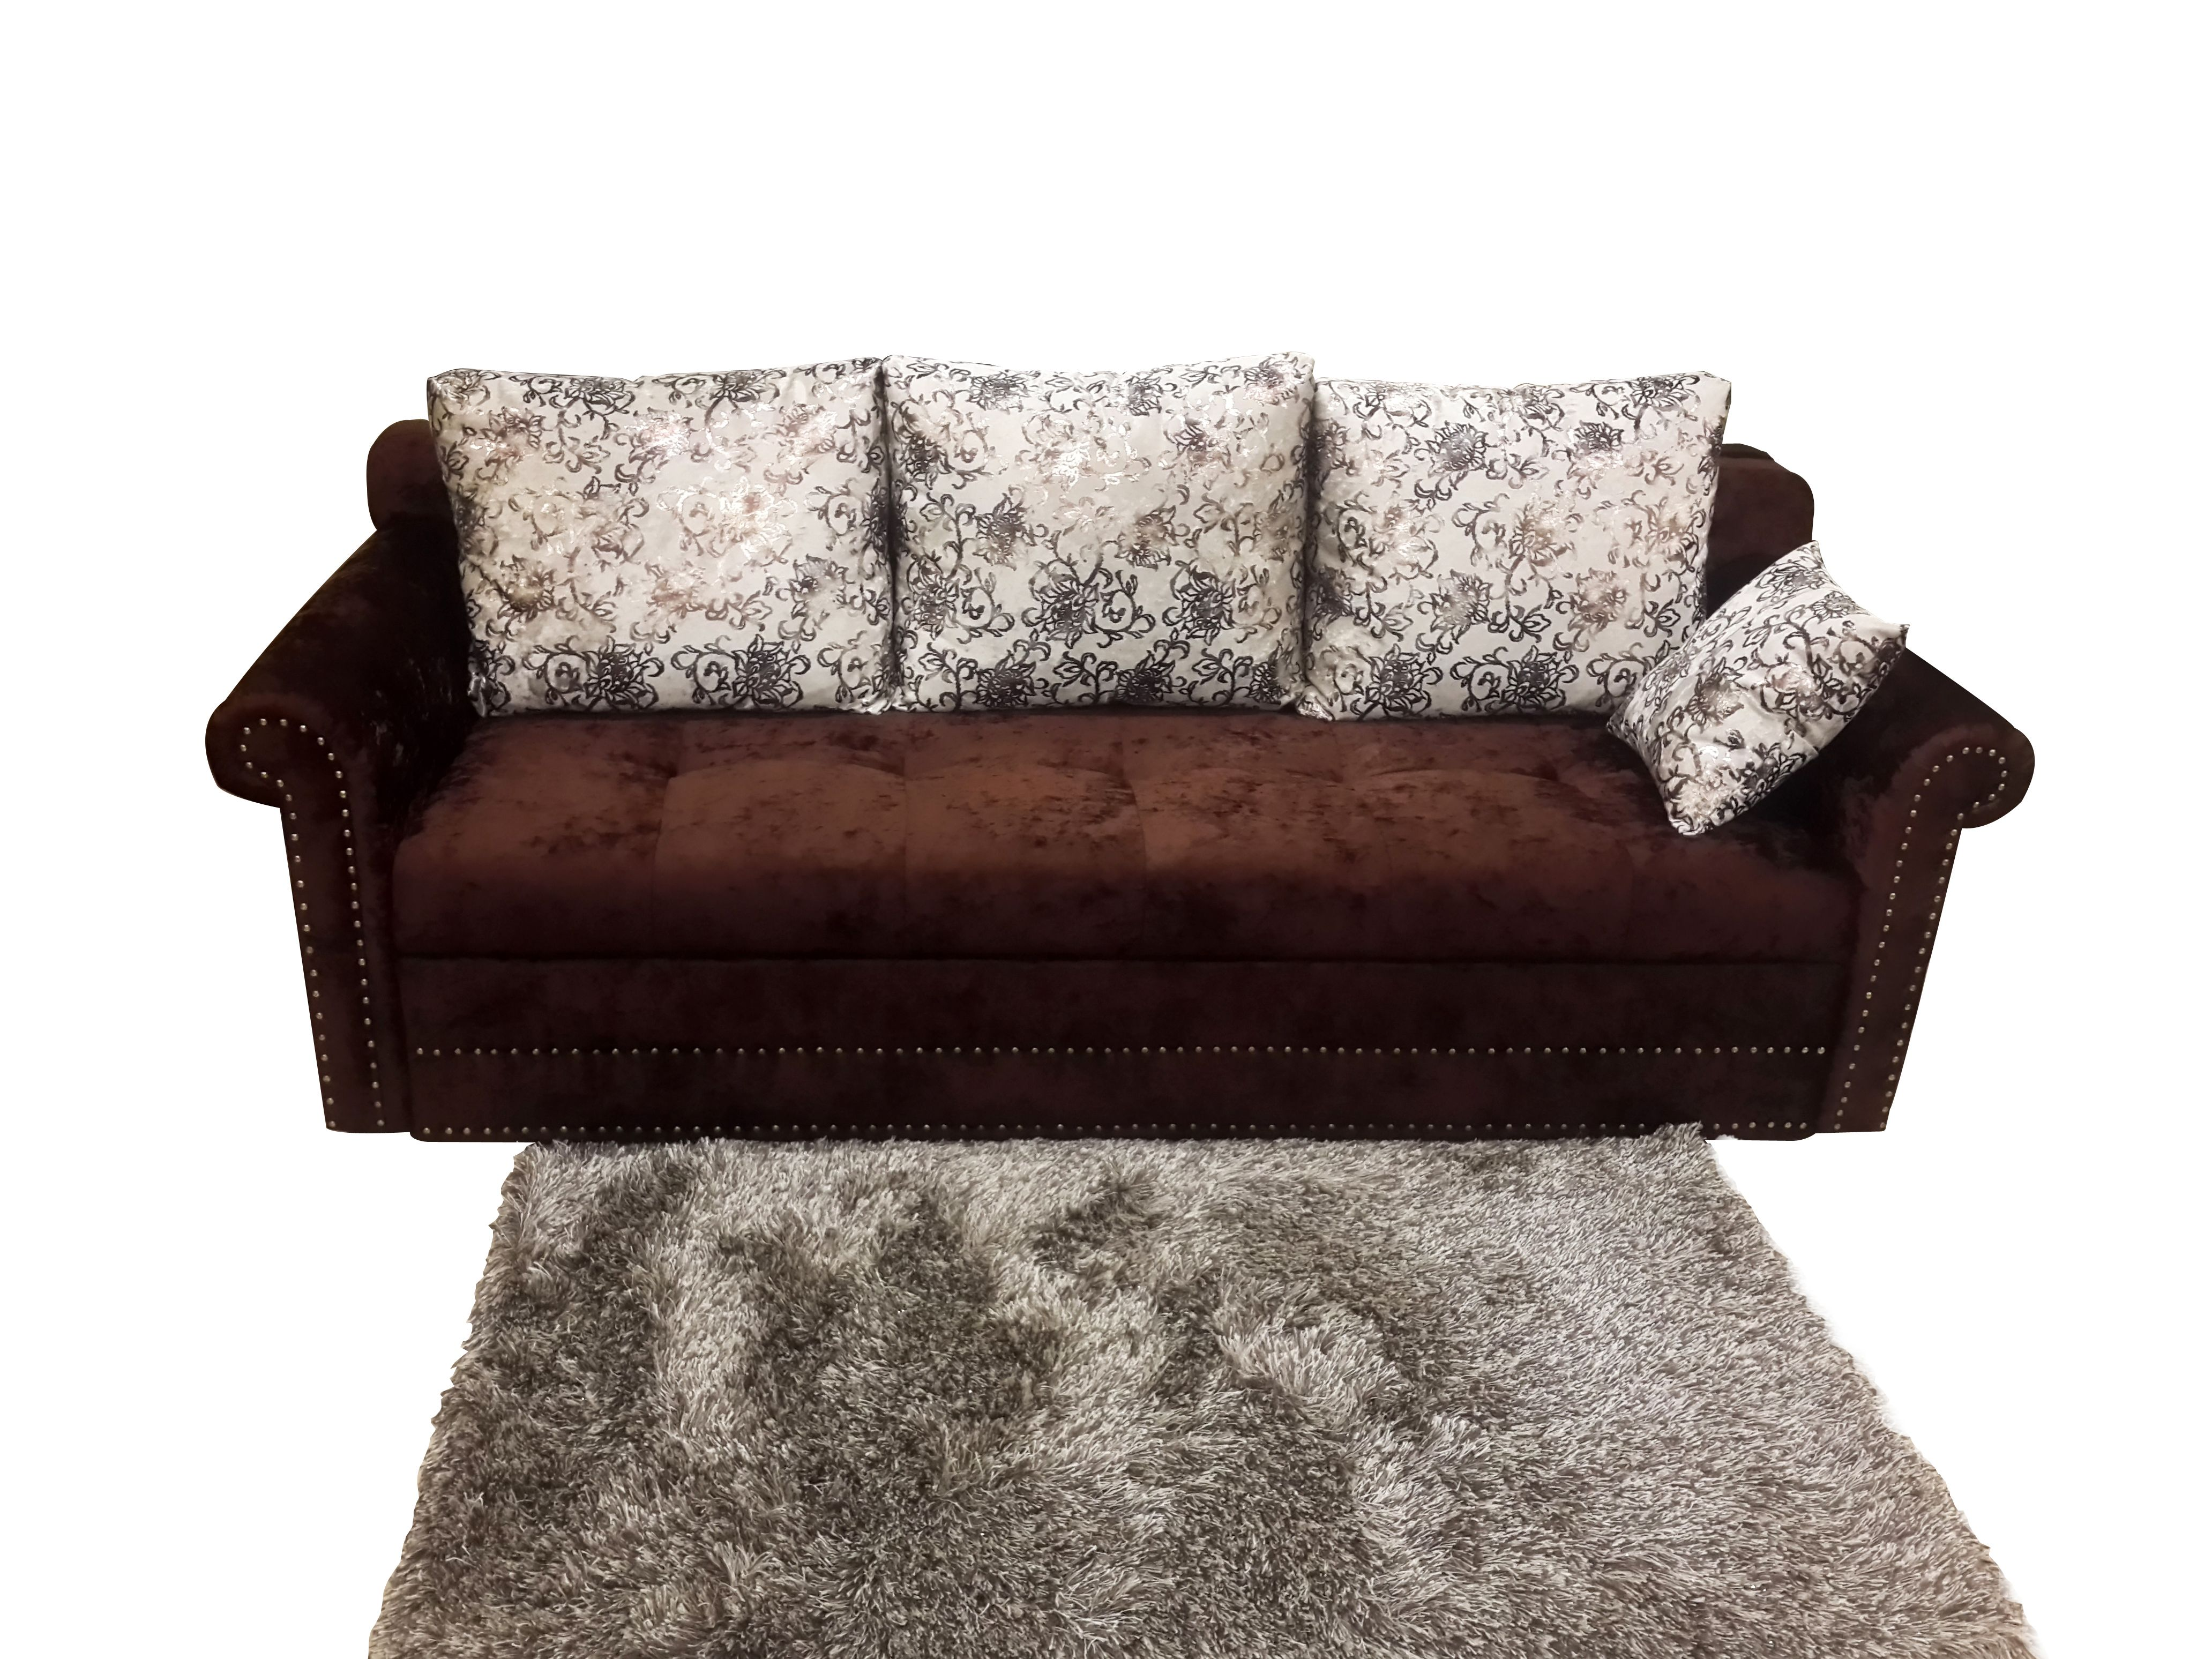 Slipcovers For Sofas Buy Milano Sofa Cum Bed Online from OnlineSofaDesign